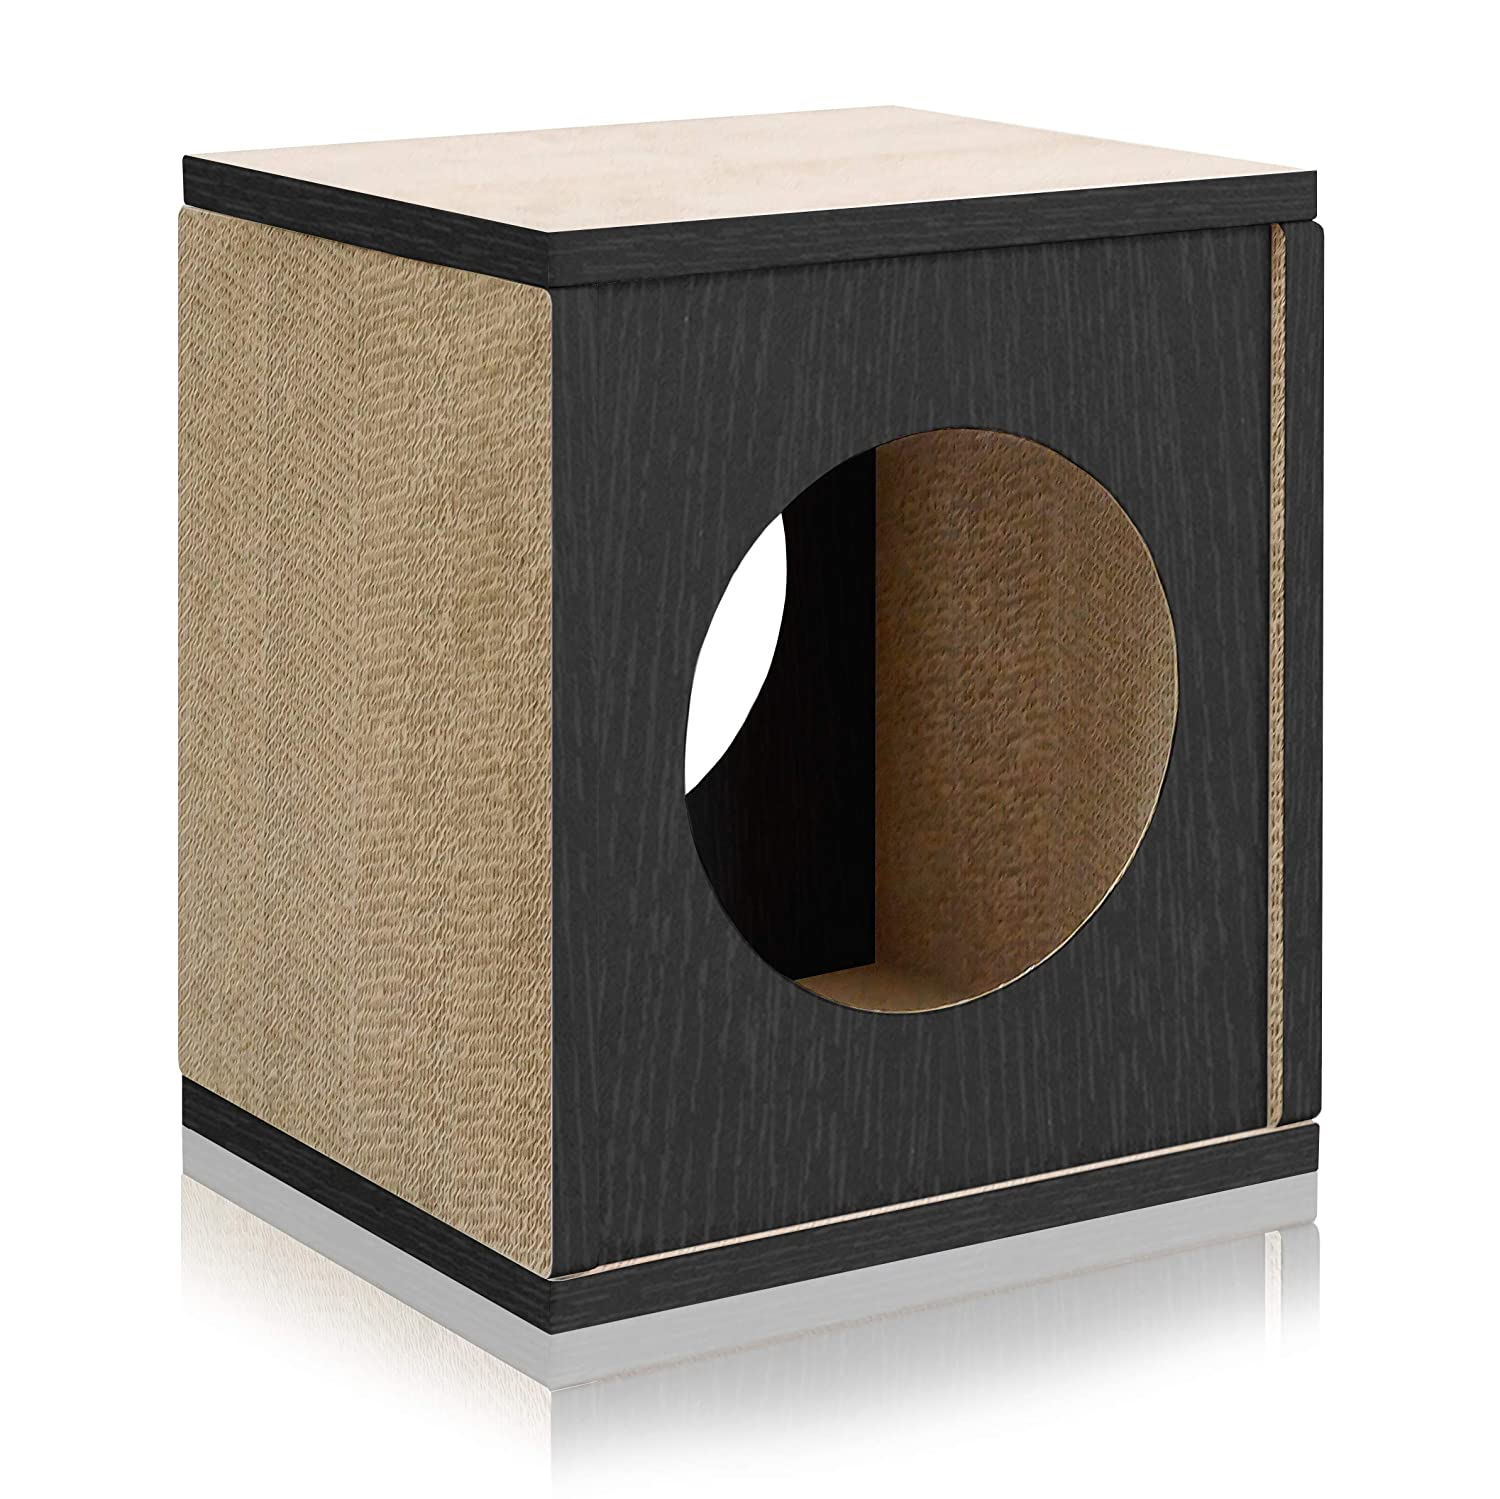 Made from Sustainable Non-Toxic zBoard paperboard PET-SCUBE-NL Way Basics Eco Friendly Cat Scratcher Cube House Made from Sustainable Non-Toxic zBoard paperboard Natural